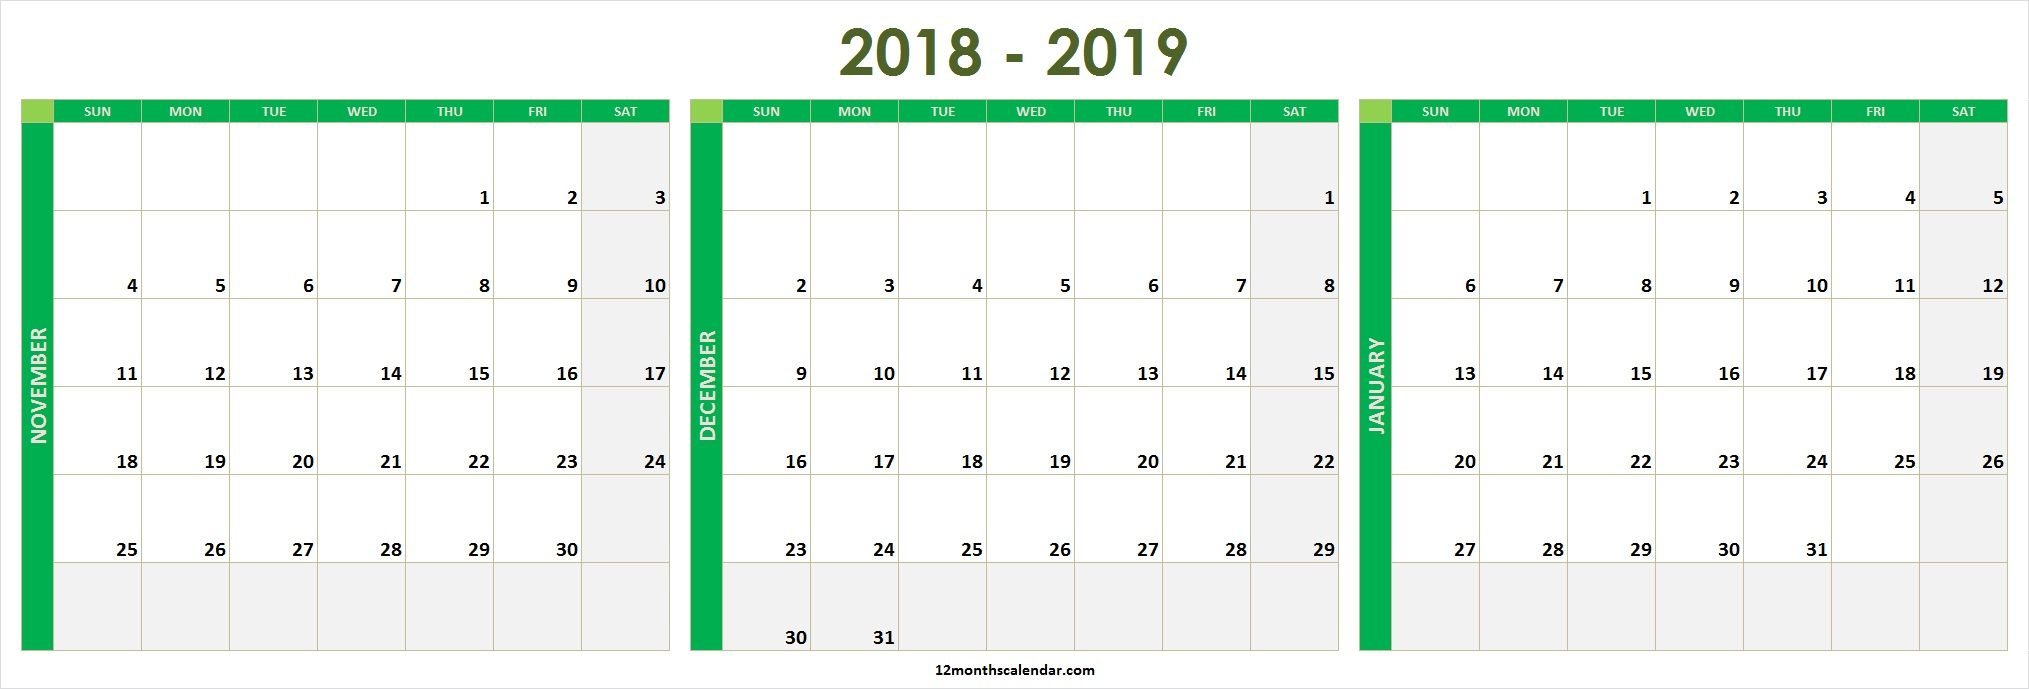 November December 2020 January 2021 Calendar Printable Free intended for Two Month Calendar November December 2020